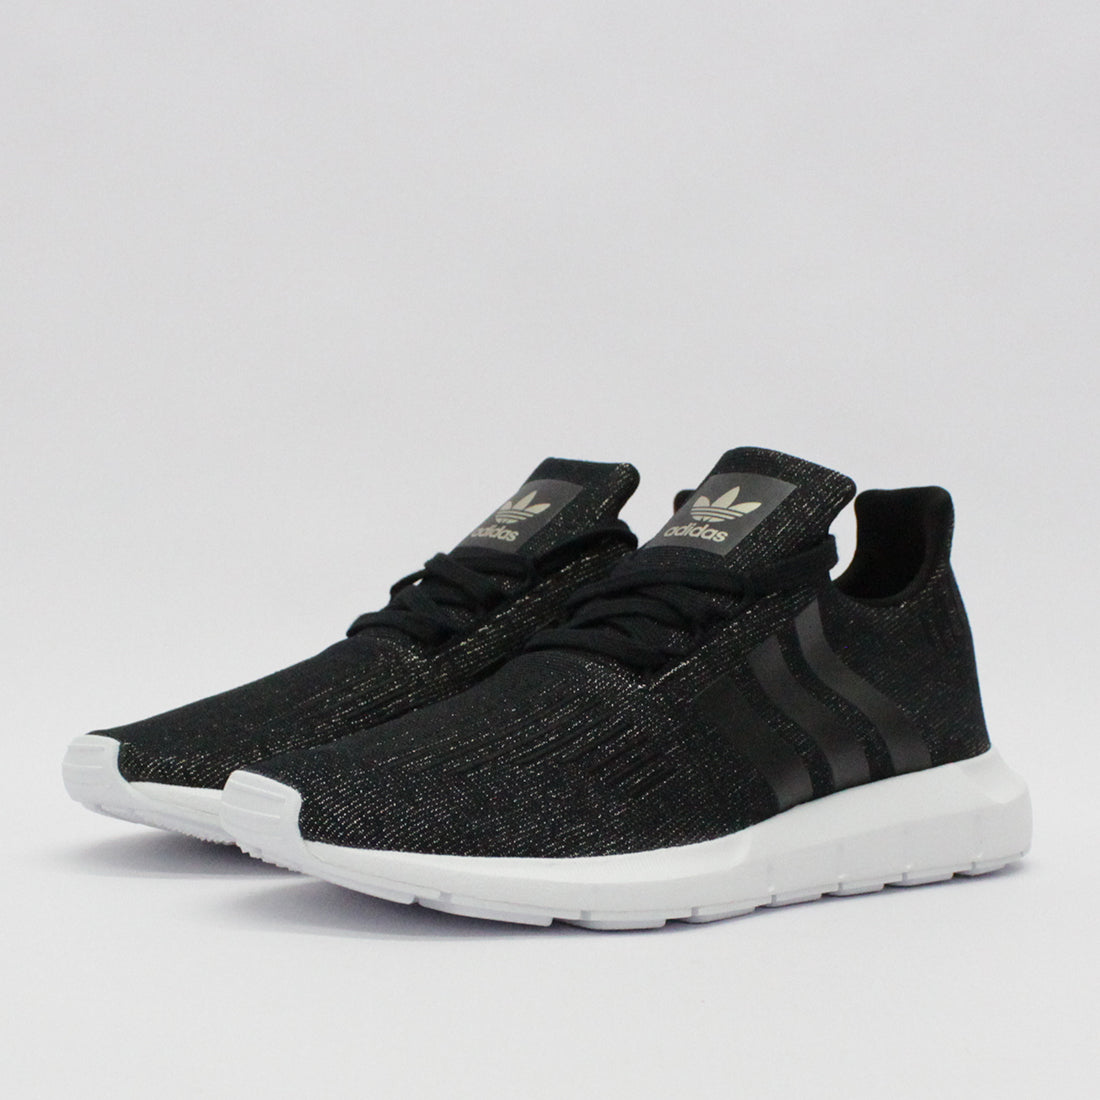 Adidas Originals Swift Run W Black CQ2018